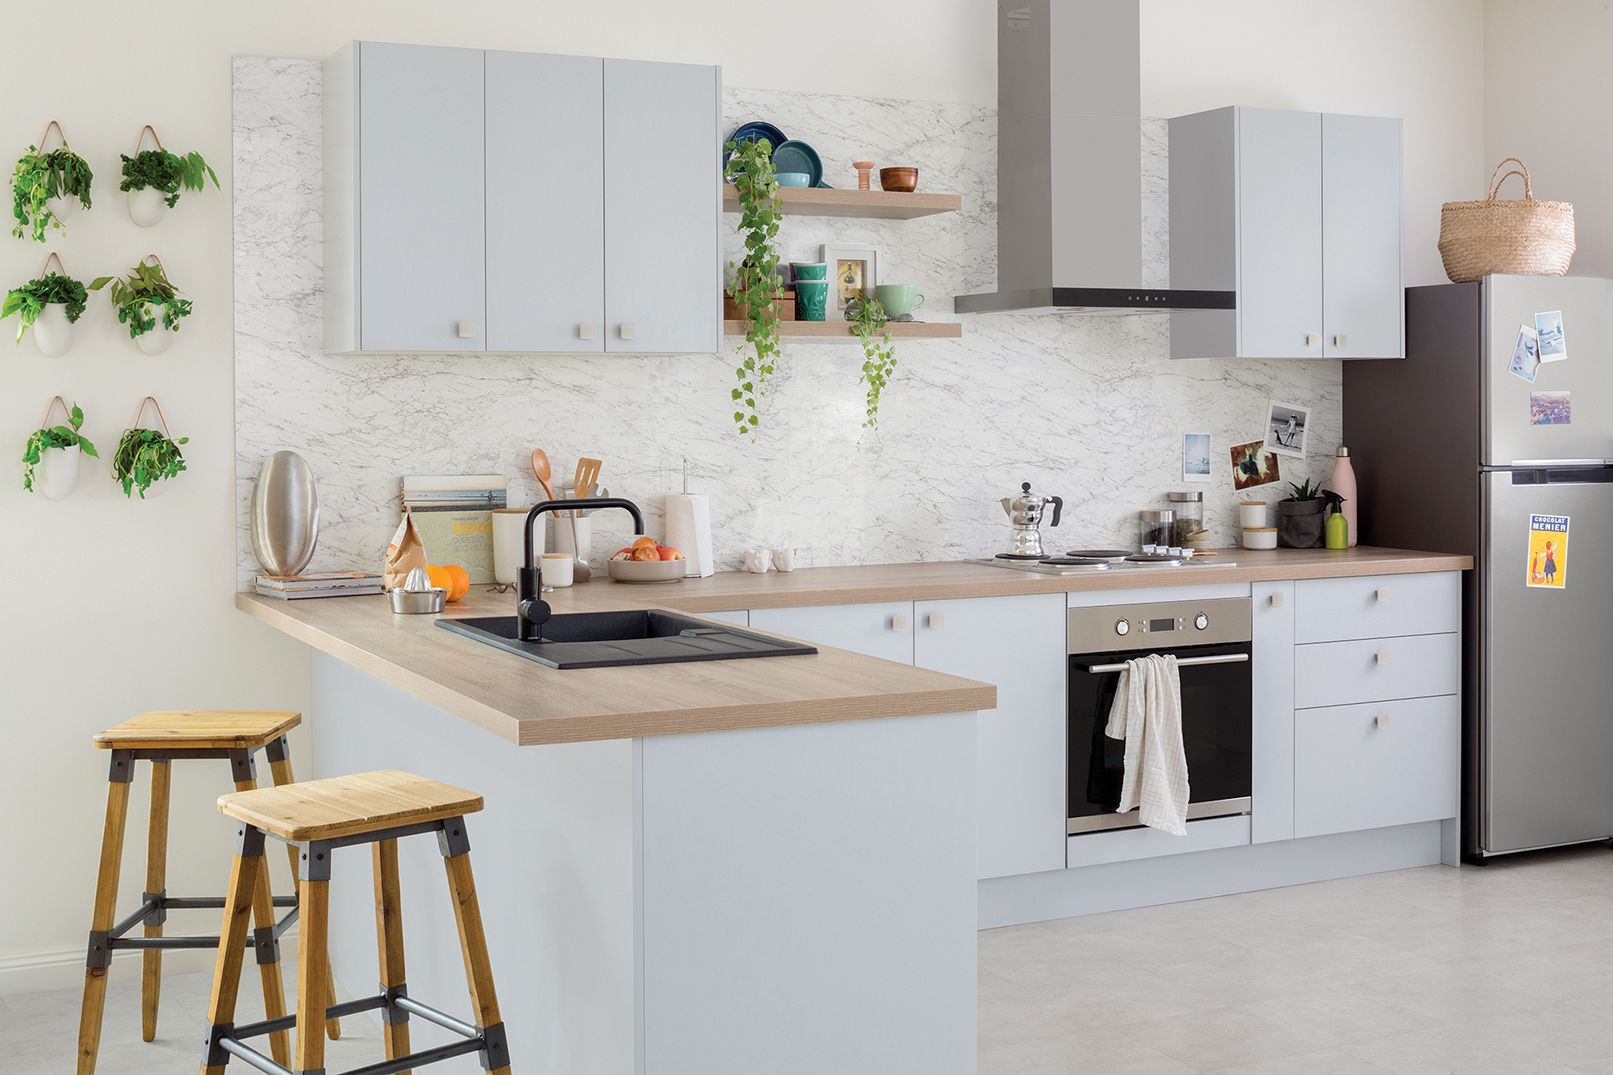 absolute pearler kitchen inspiration and ideas kaboodle kitchen kitchen inspiration design on kaboodle kitchen microwave id=86837